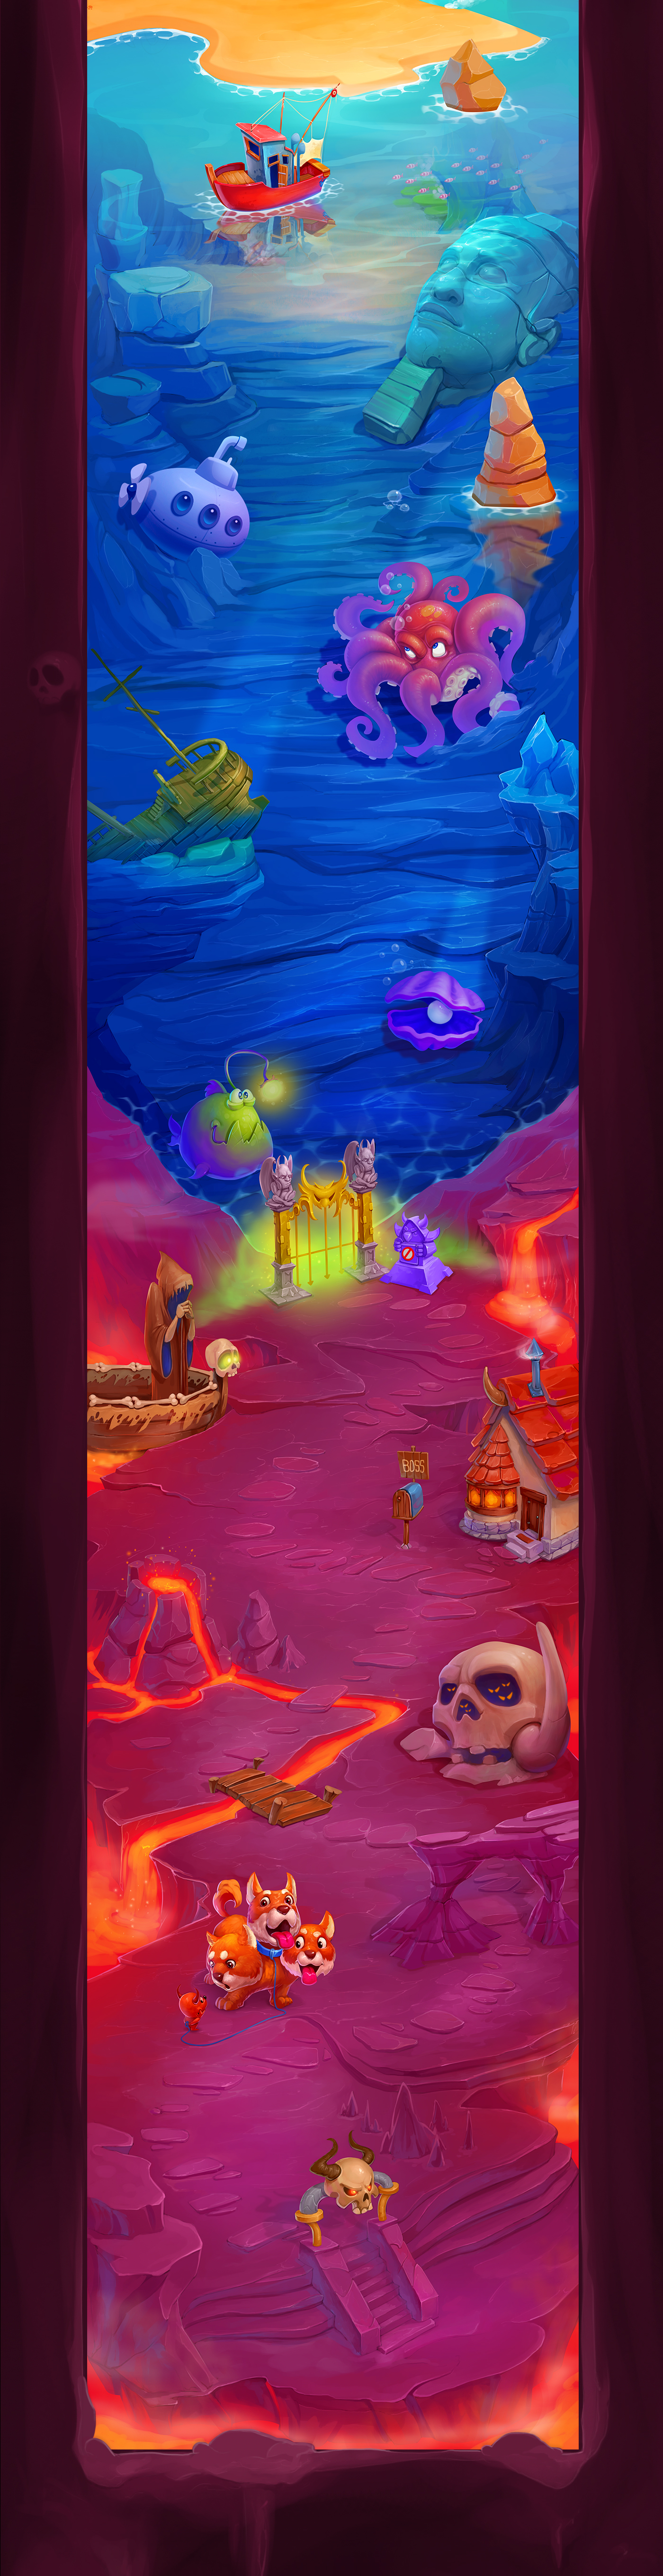 map GUI Character game Level powerup upgrade devil angel Cat background UI hell jungle mountains